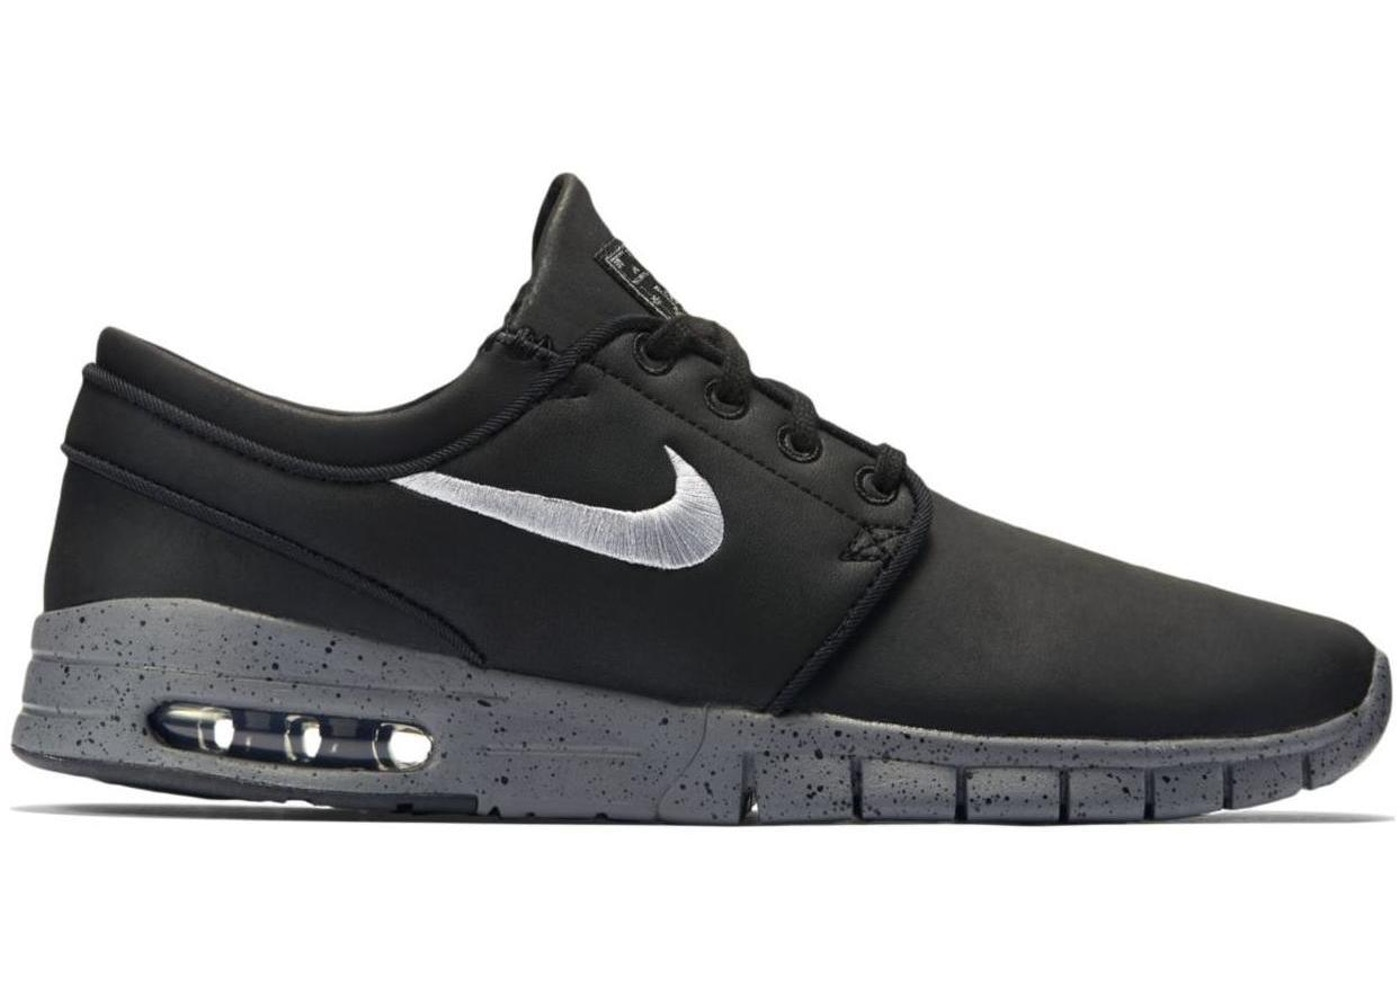 ec67f1fc Sell. or Ask. Size: 9.5. View All Bids. Nike SB Stefan Janoski Max NYC  Edition